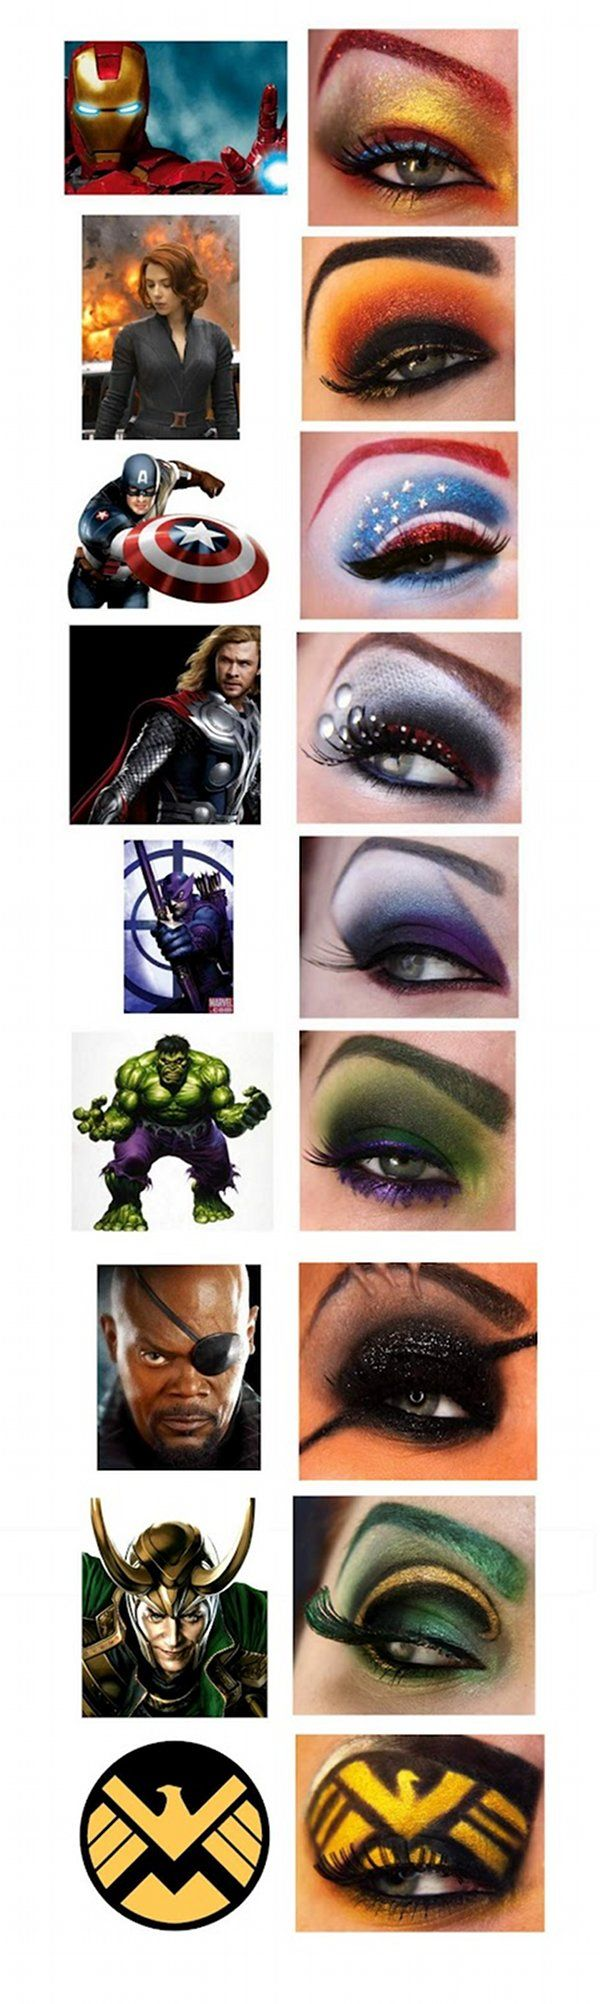 best pretty makeup inspirations images on pinterest artistic